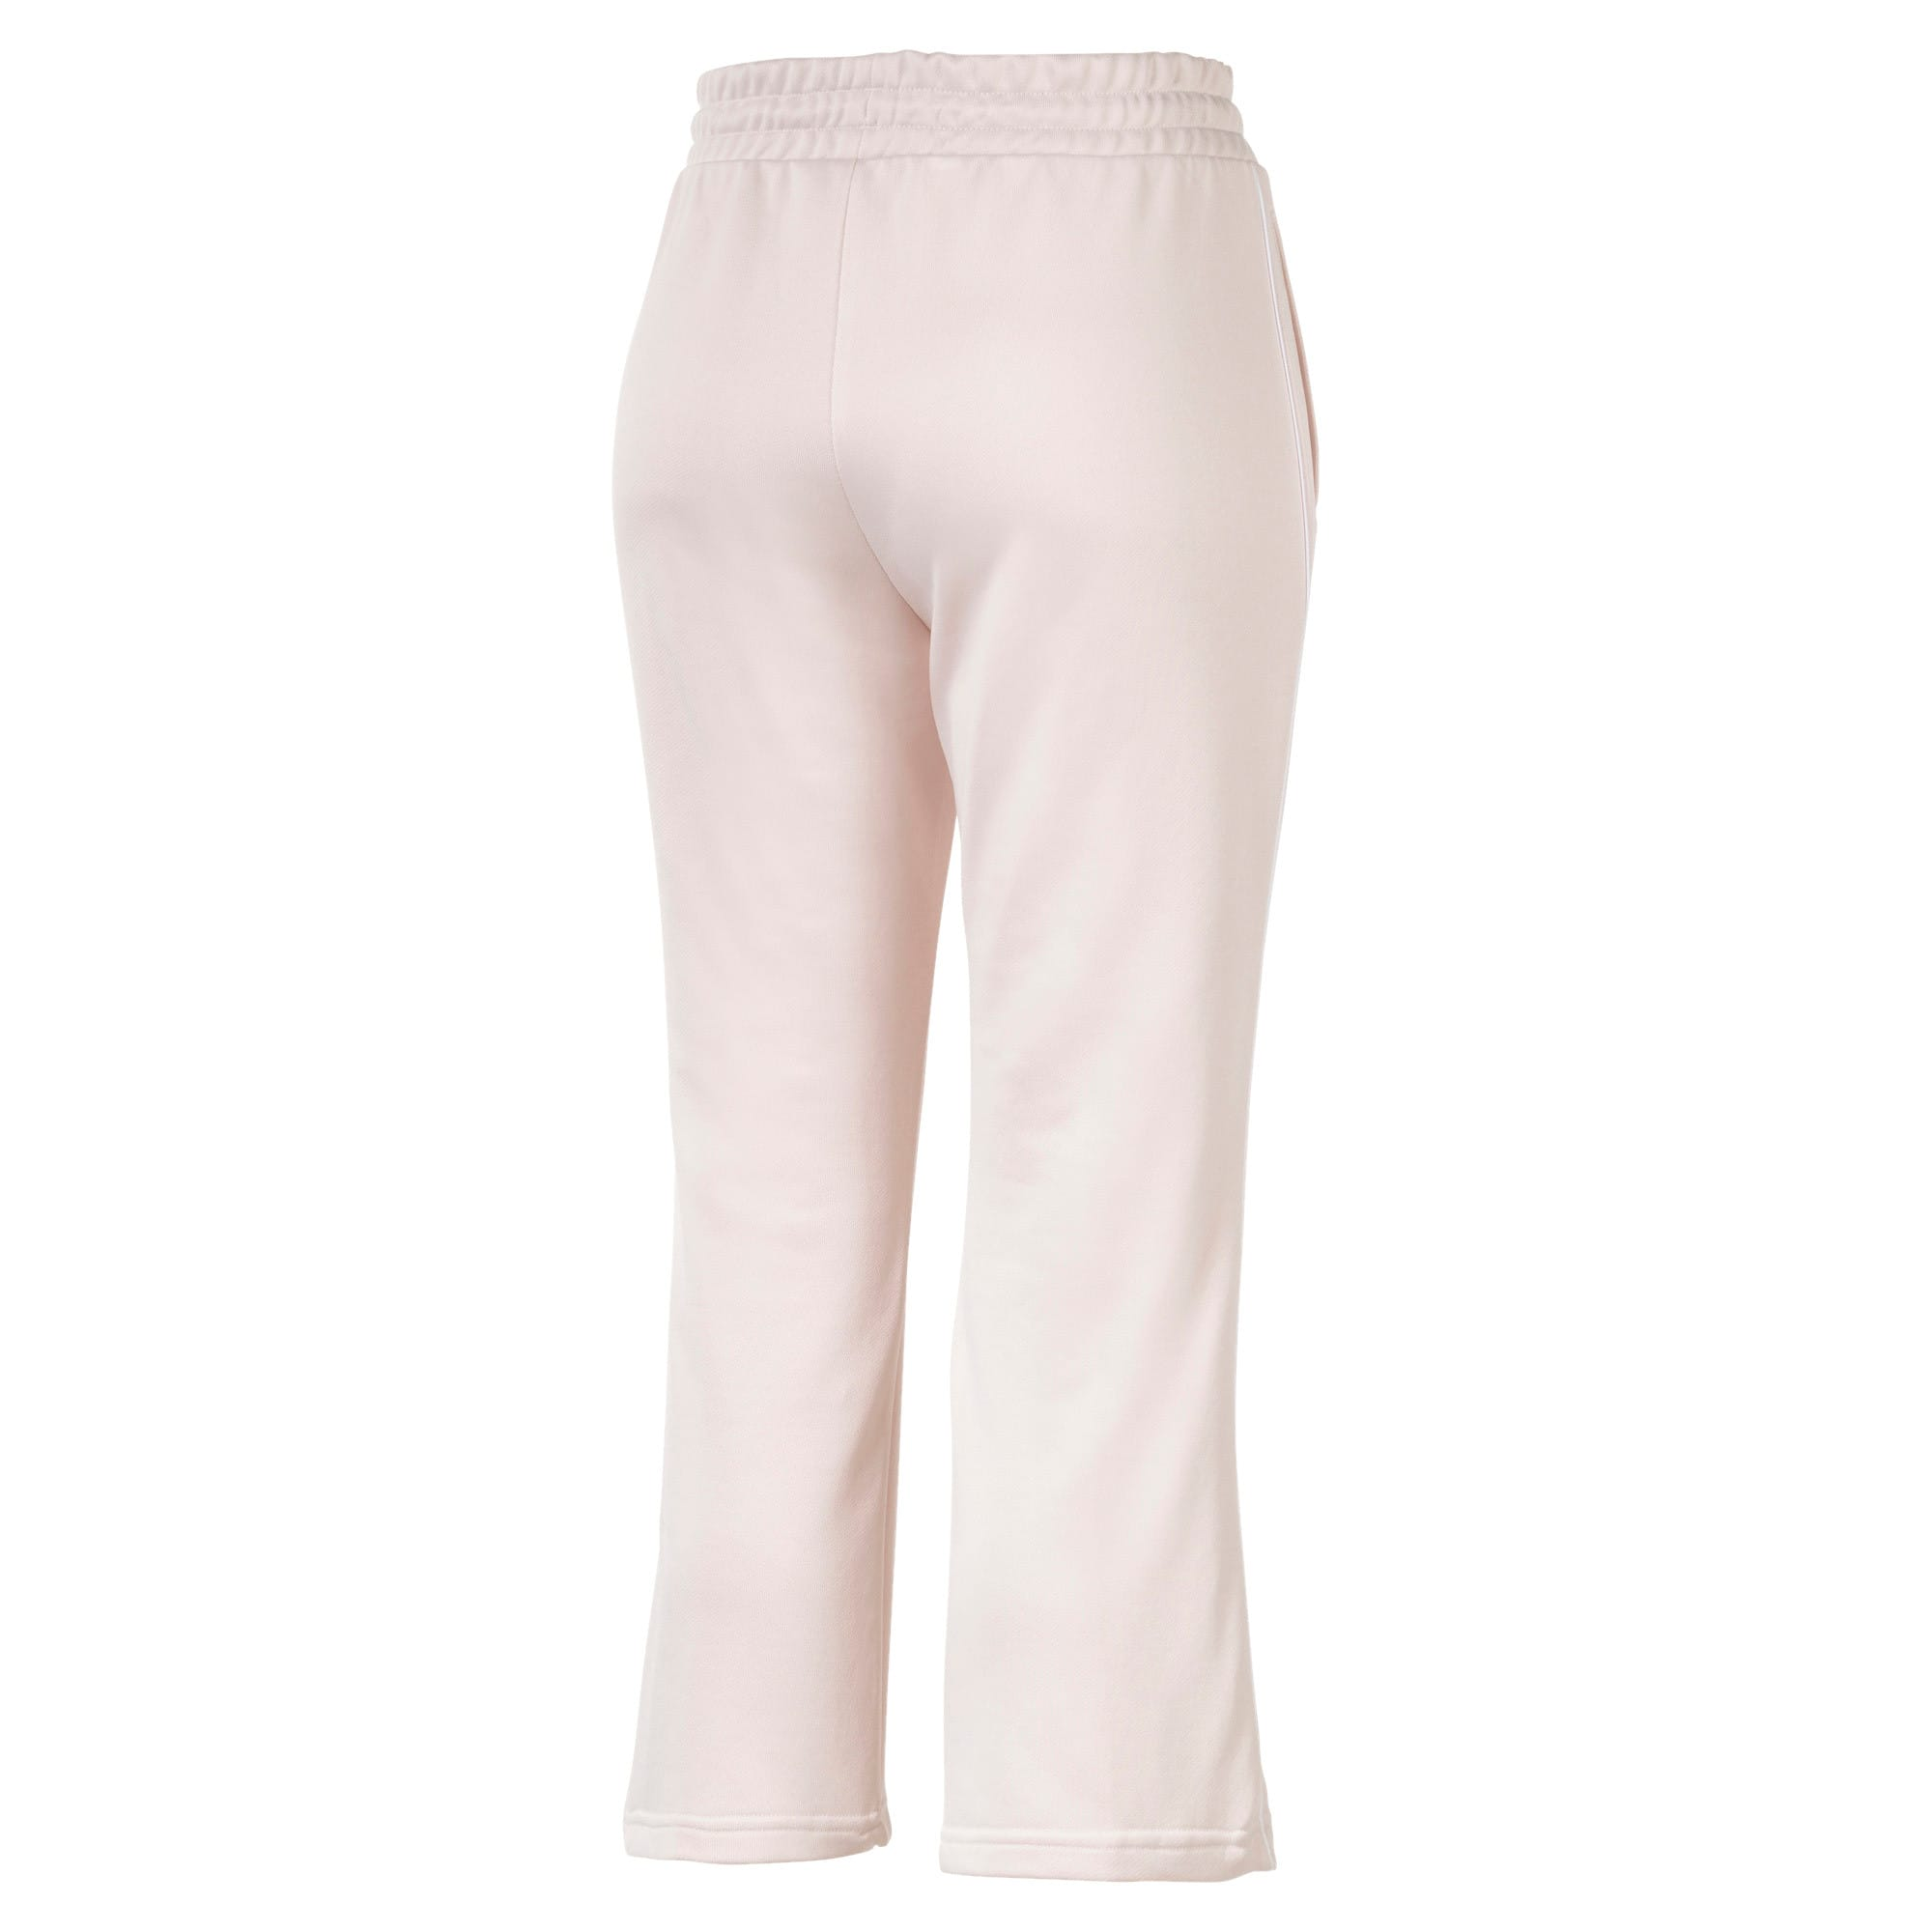 Thumbnail 5 of Classics Kick Flare Knitted Women's Pants, Pastel Parchment, medium